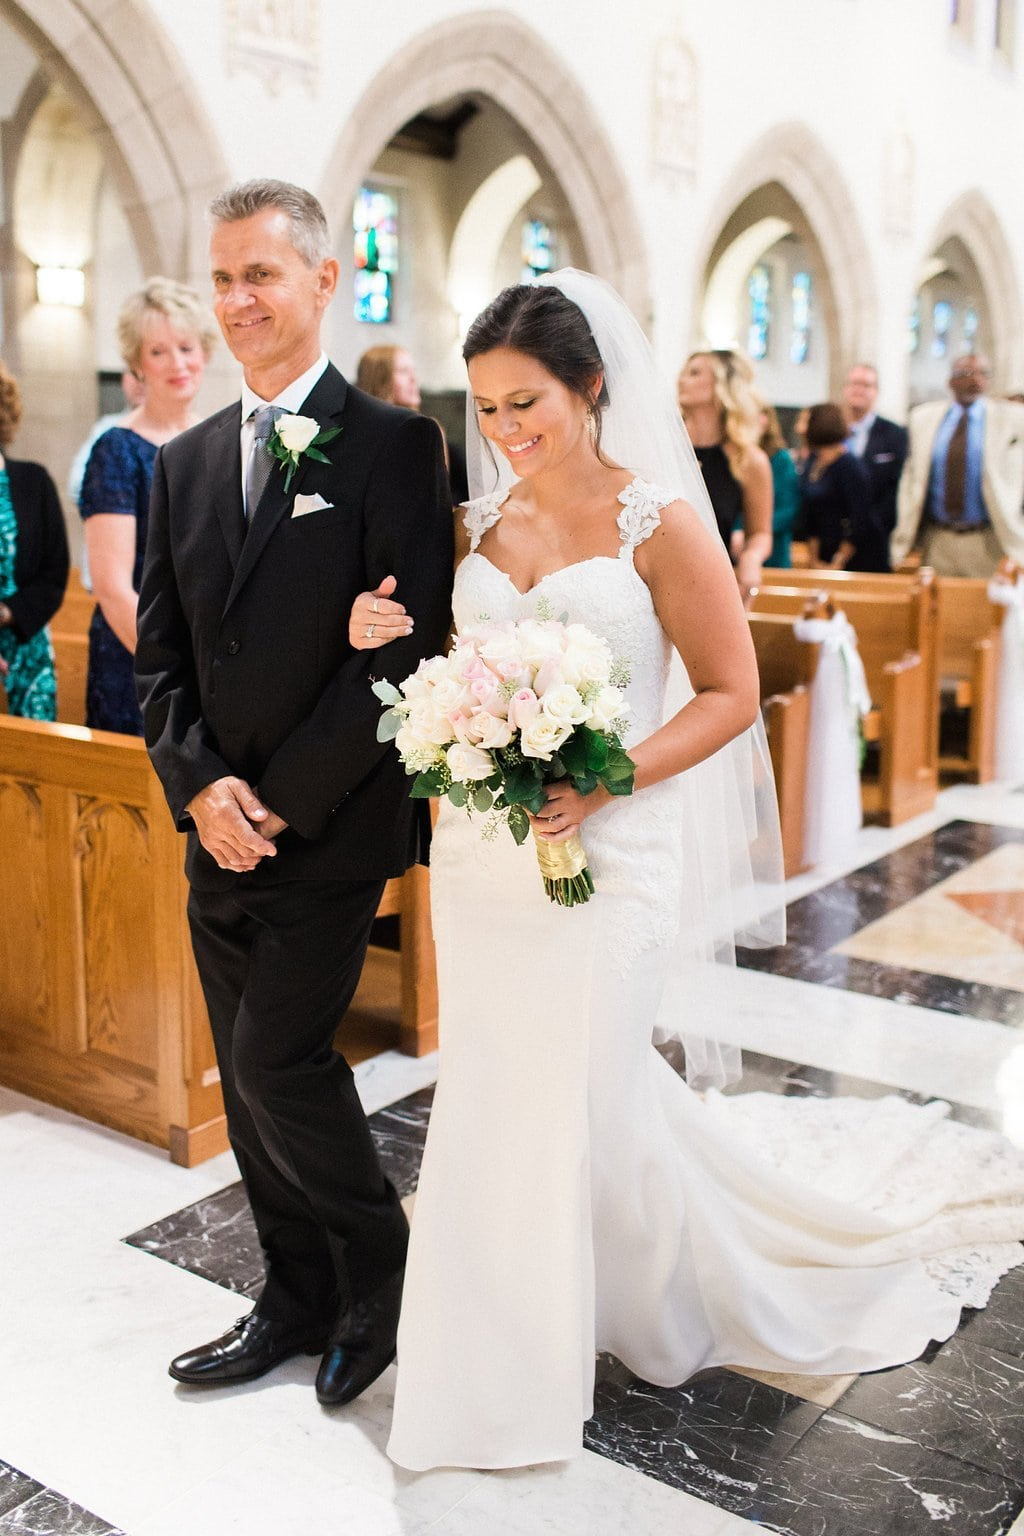 Bride smiling as she is walked down the aisle by her father